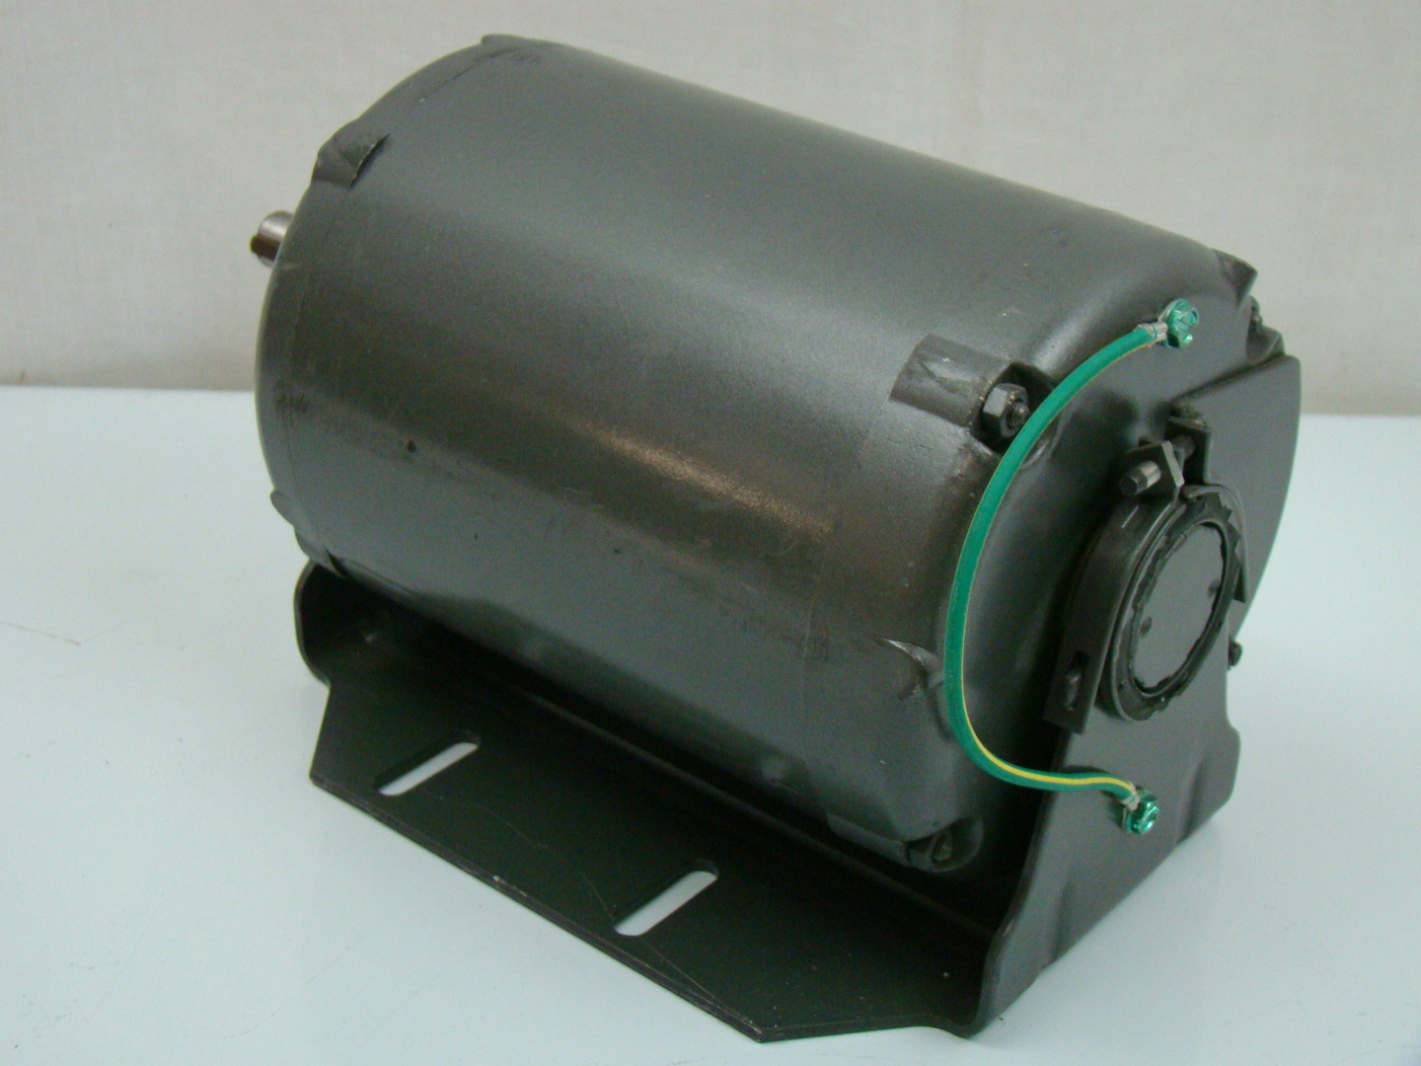 Baldor 1 4 hp 3ph electric motor 34k021 4880g1 for Baldor electric motor parts